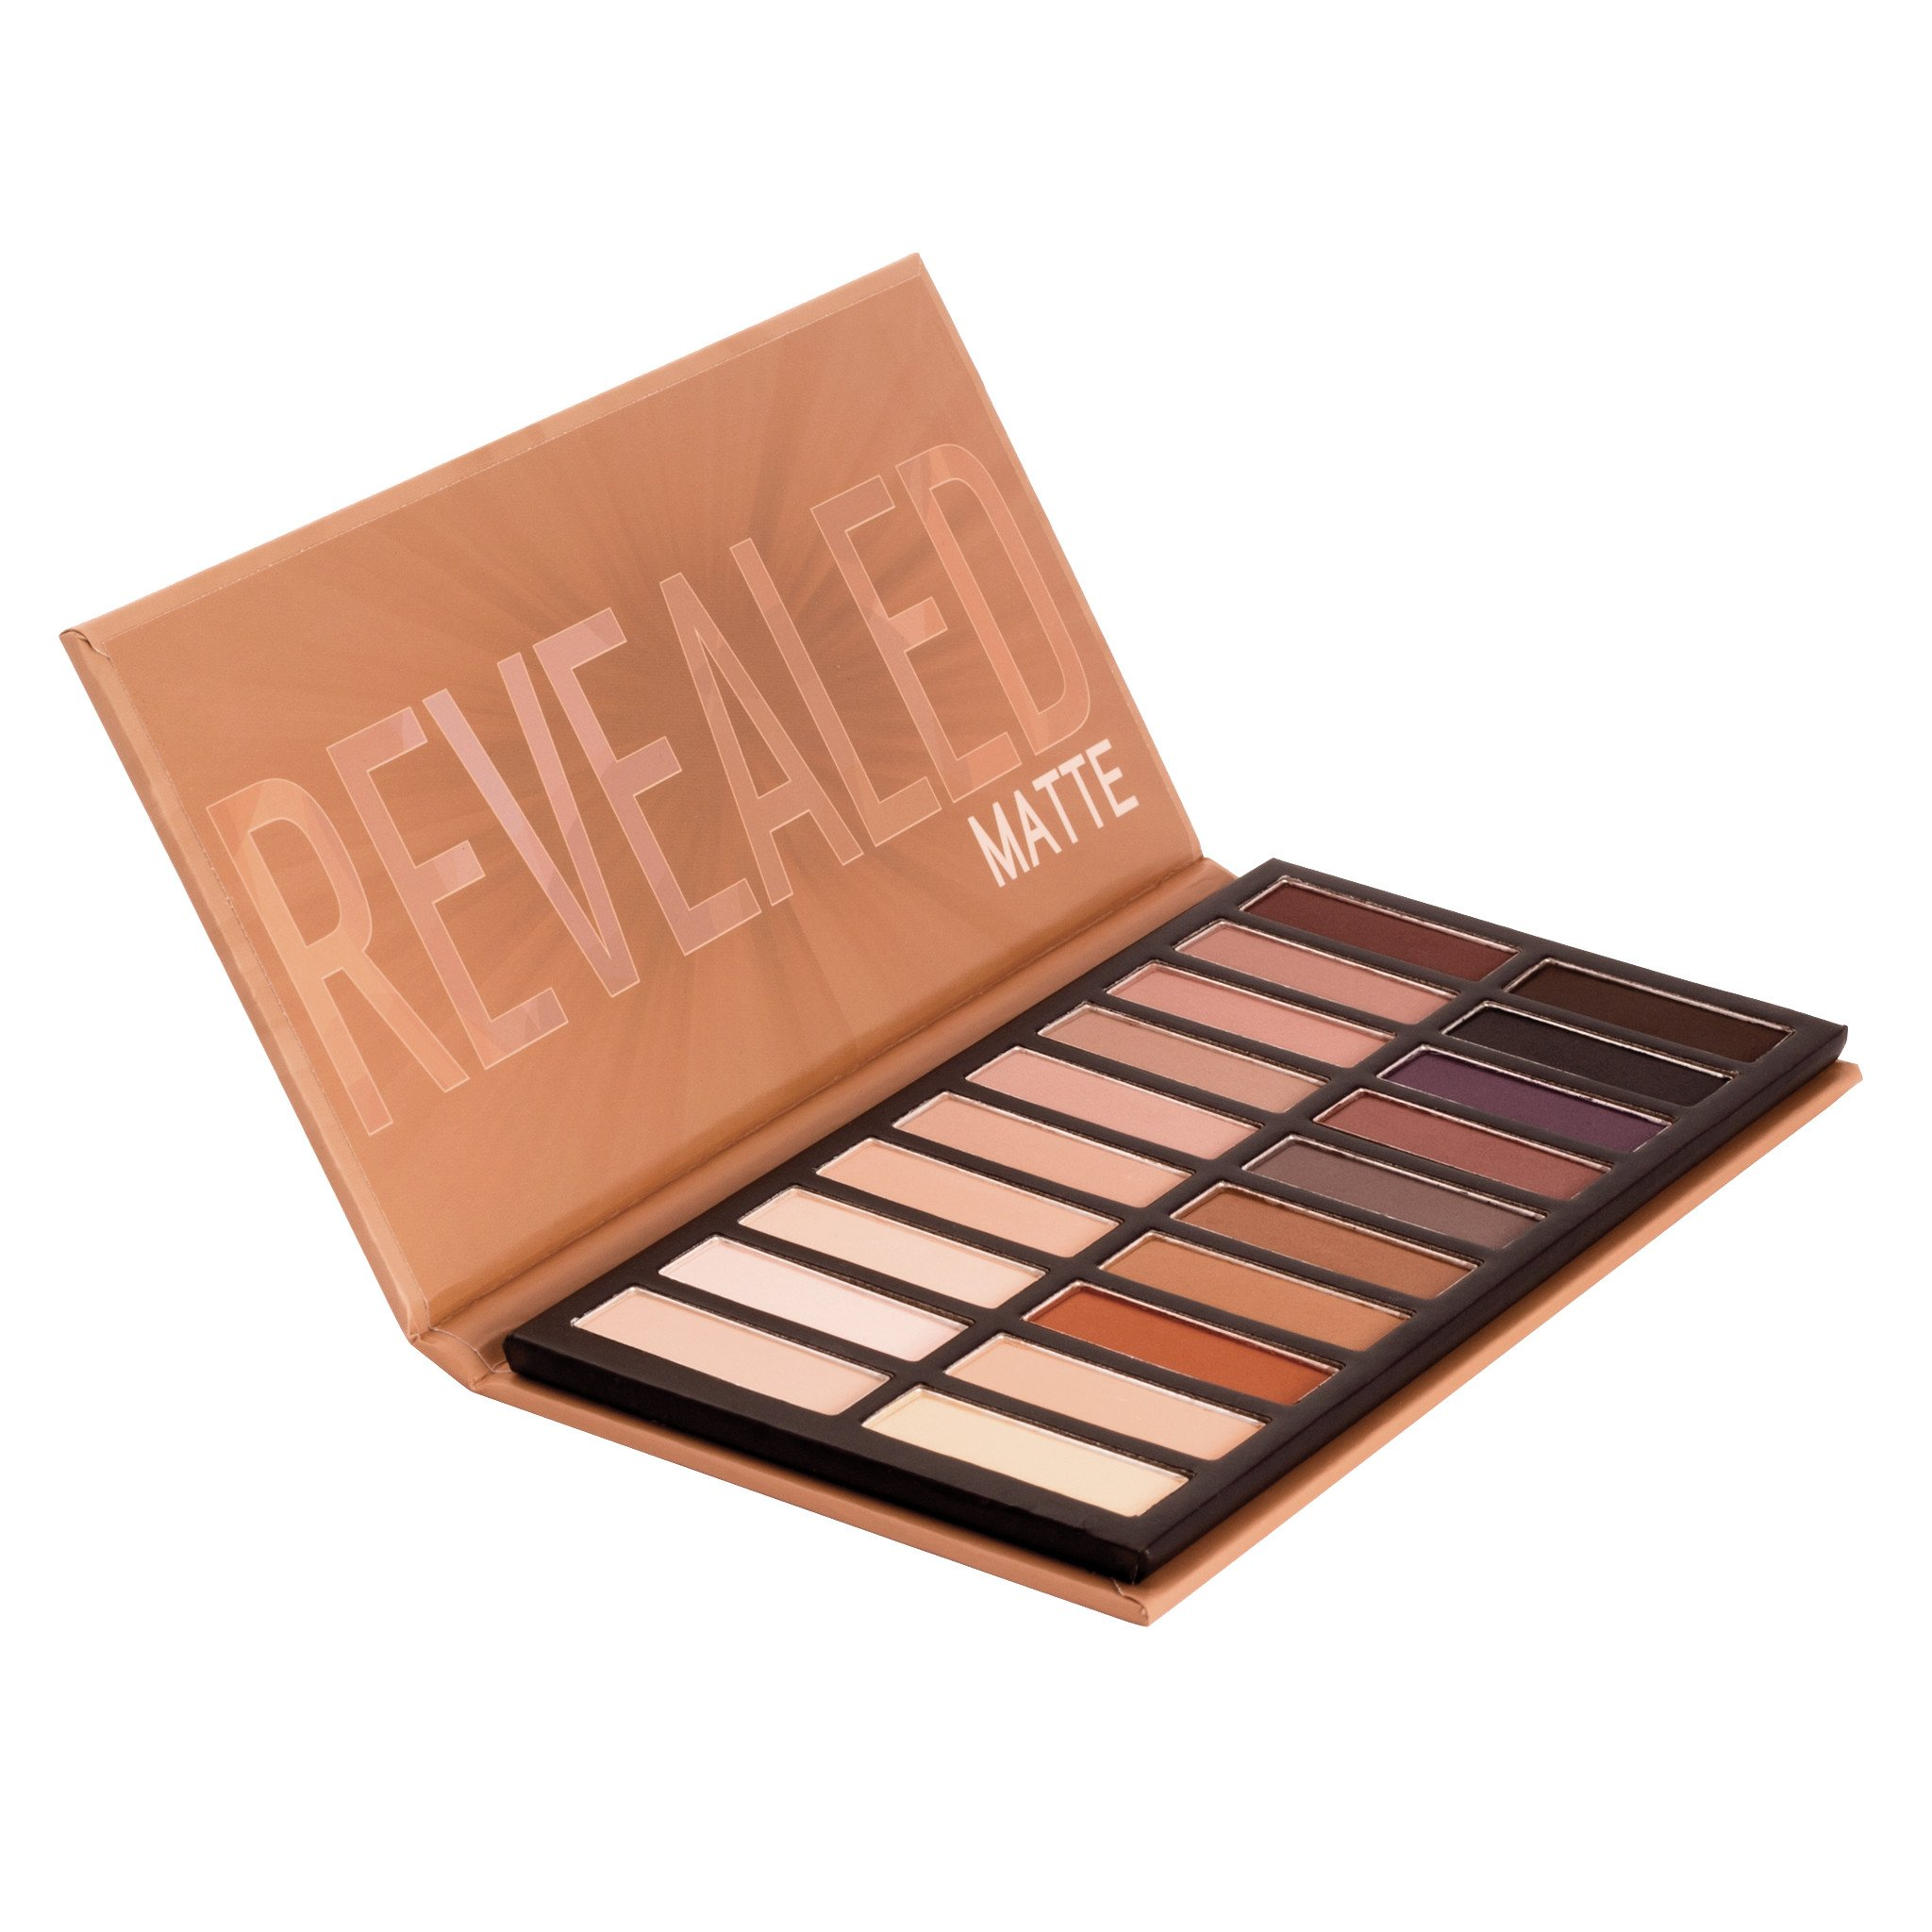 Revealed Matte Eyeshadow Palette Image